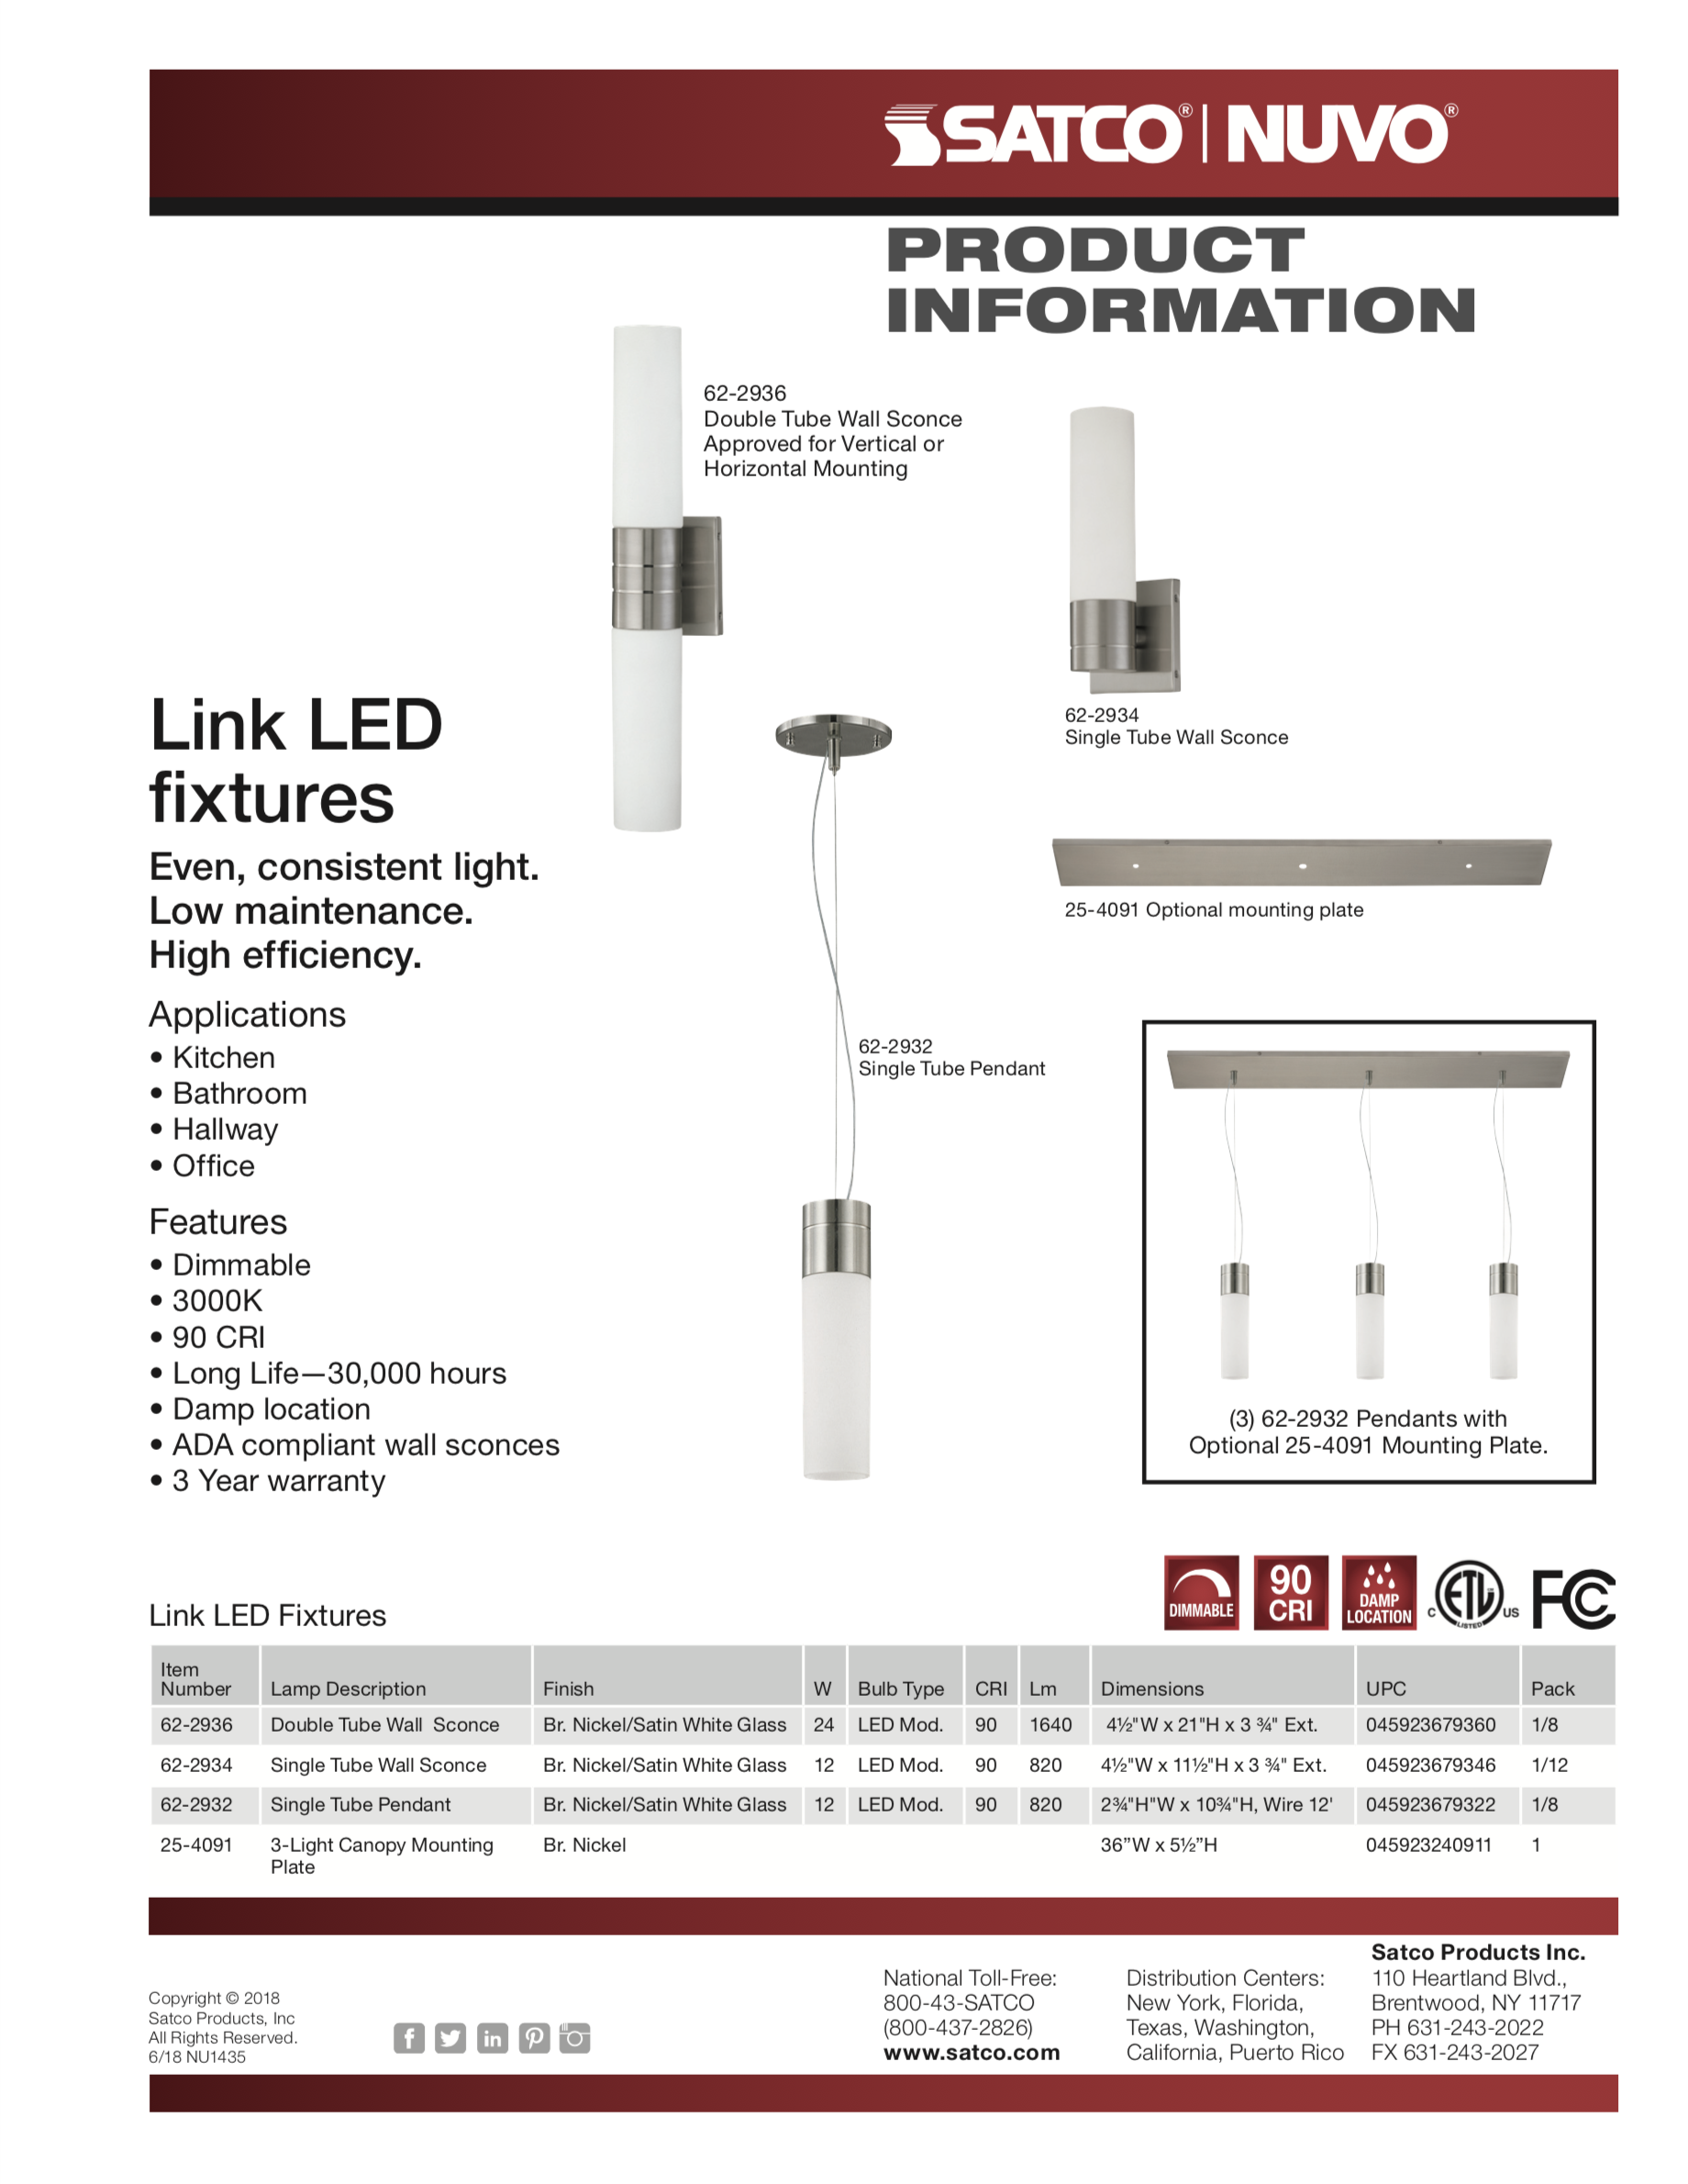 Youll Love The Versatile Link Its More Powerful Than You Think Wiring Lights In Series Or Parallel Diagram Further Satco Led Lighting Solutions Feature Most Light Fixture On Market Luminaires Are Best Solution For Kitchen